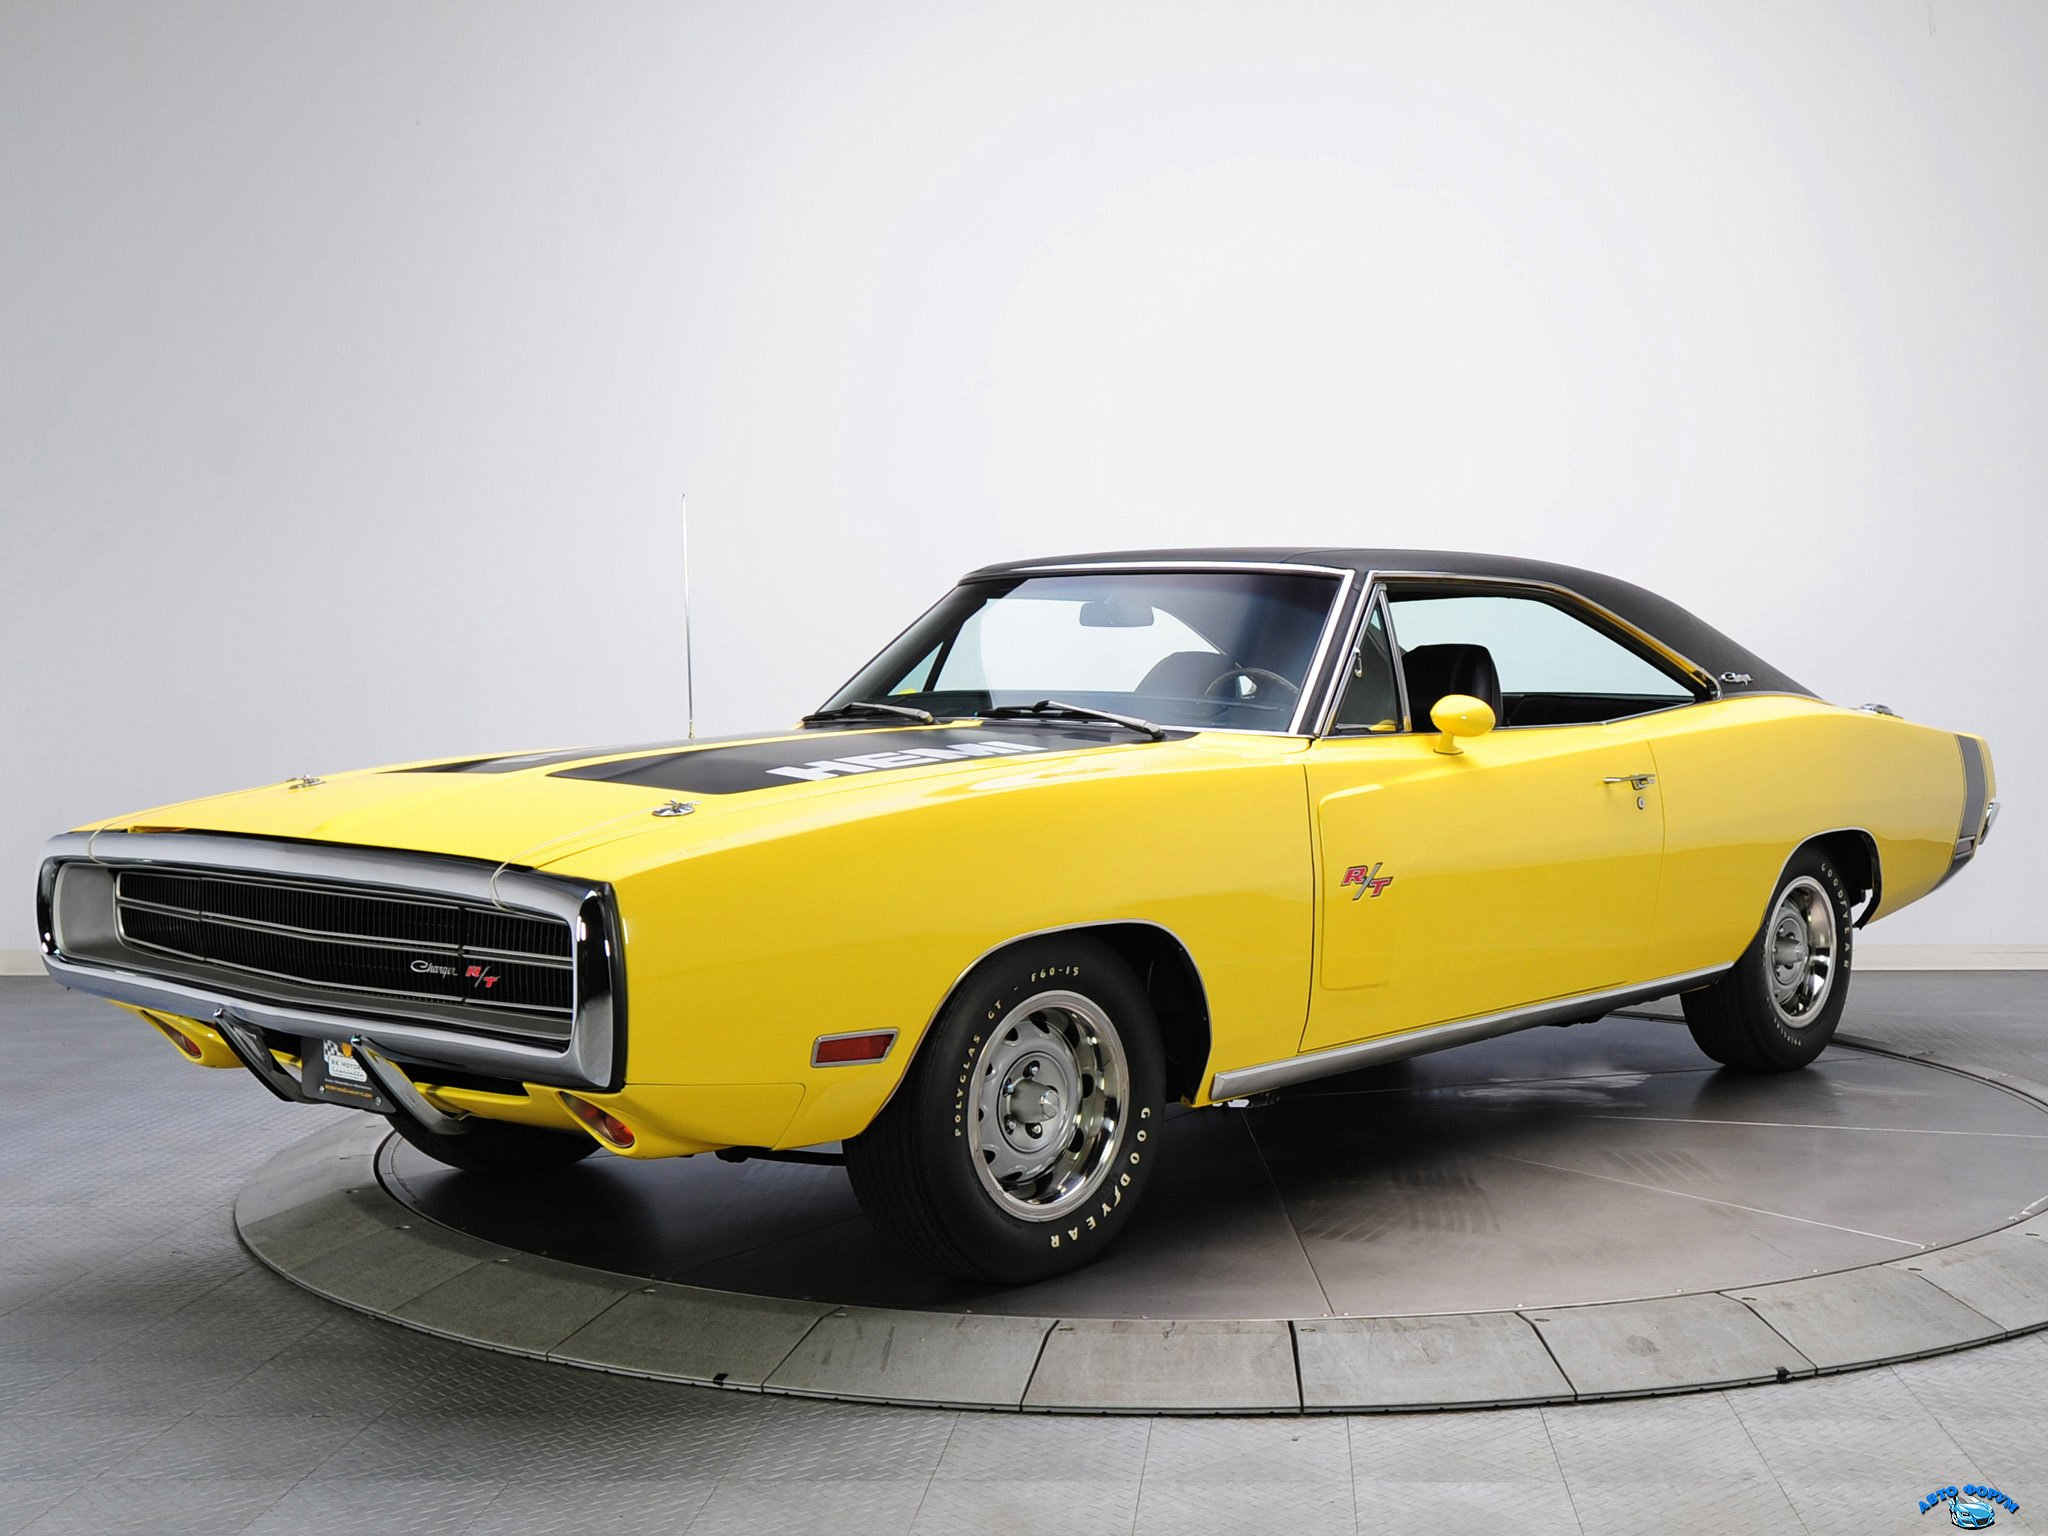 Dodge charger r t 1970-1.jpg